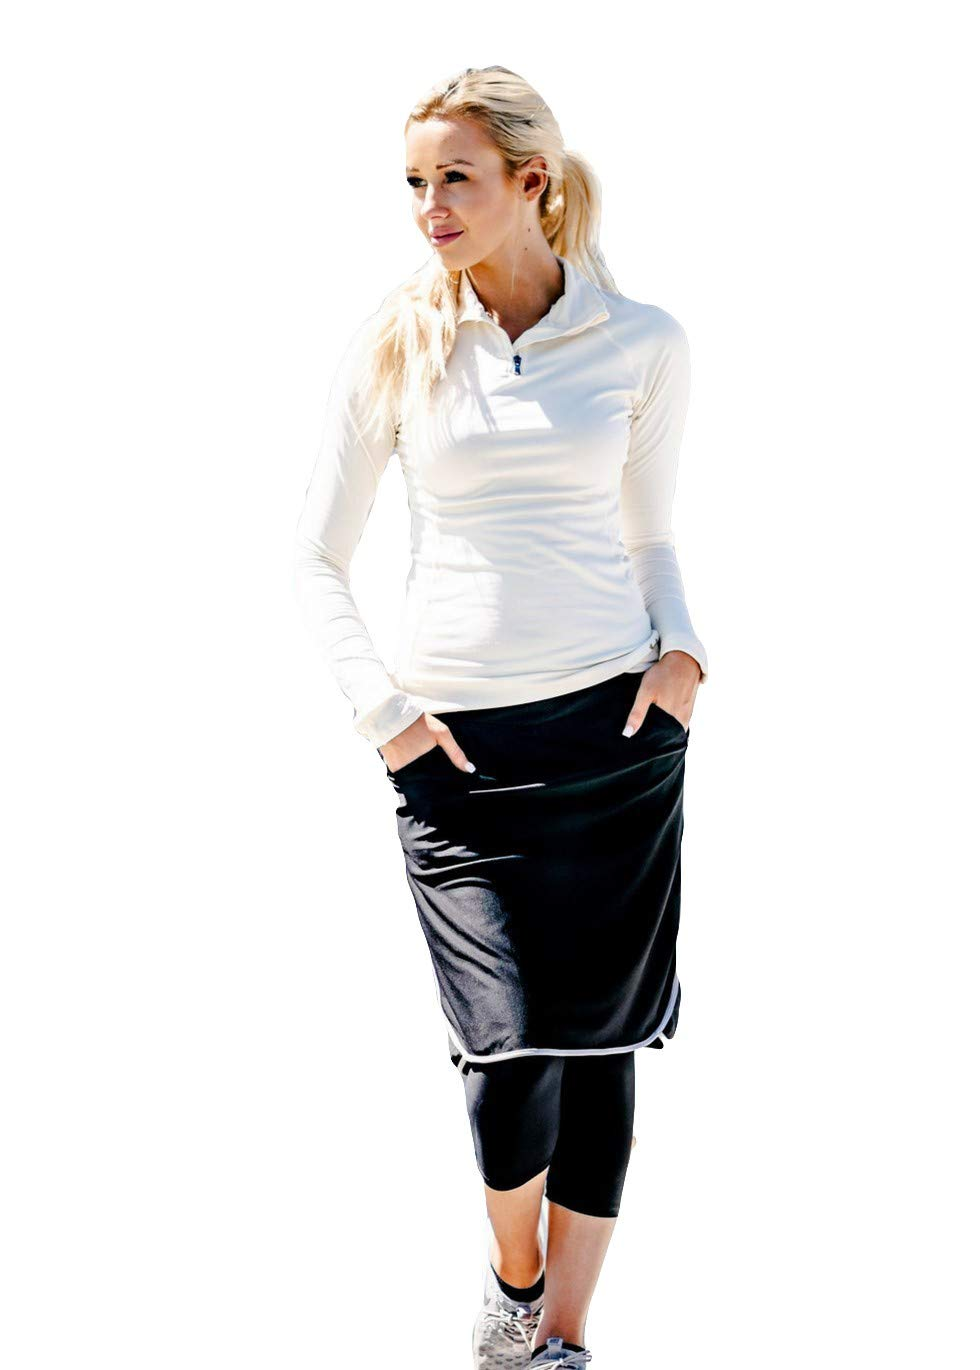 Ella Mae Sports Skirt for Women: Knee-Length Workout Skirt w/Attached Leggings Grey